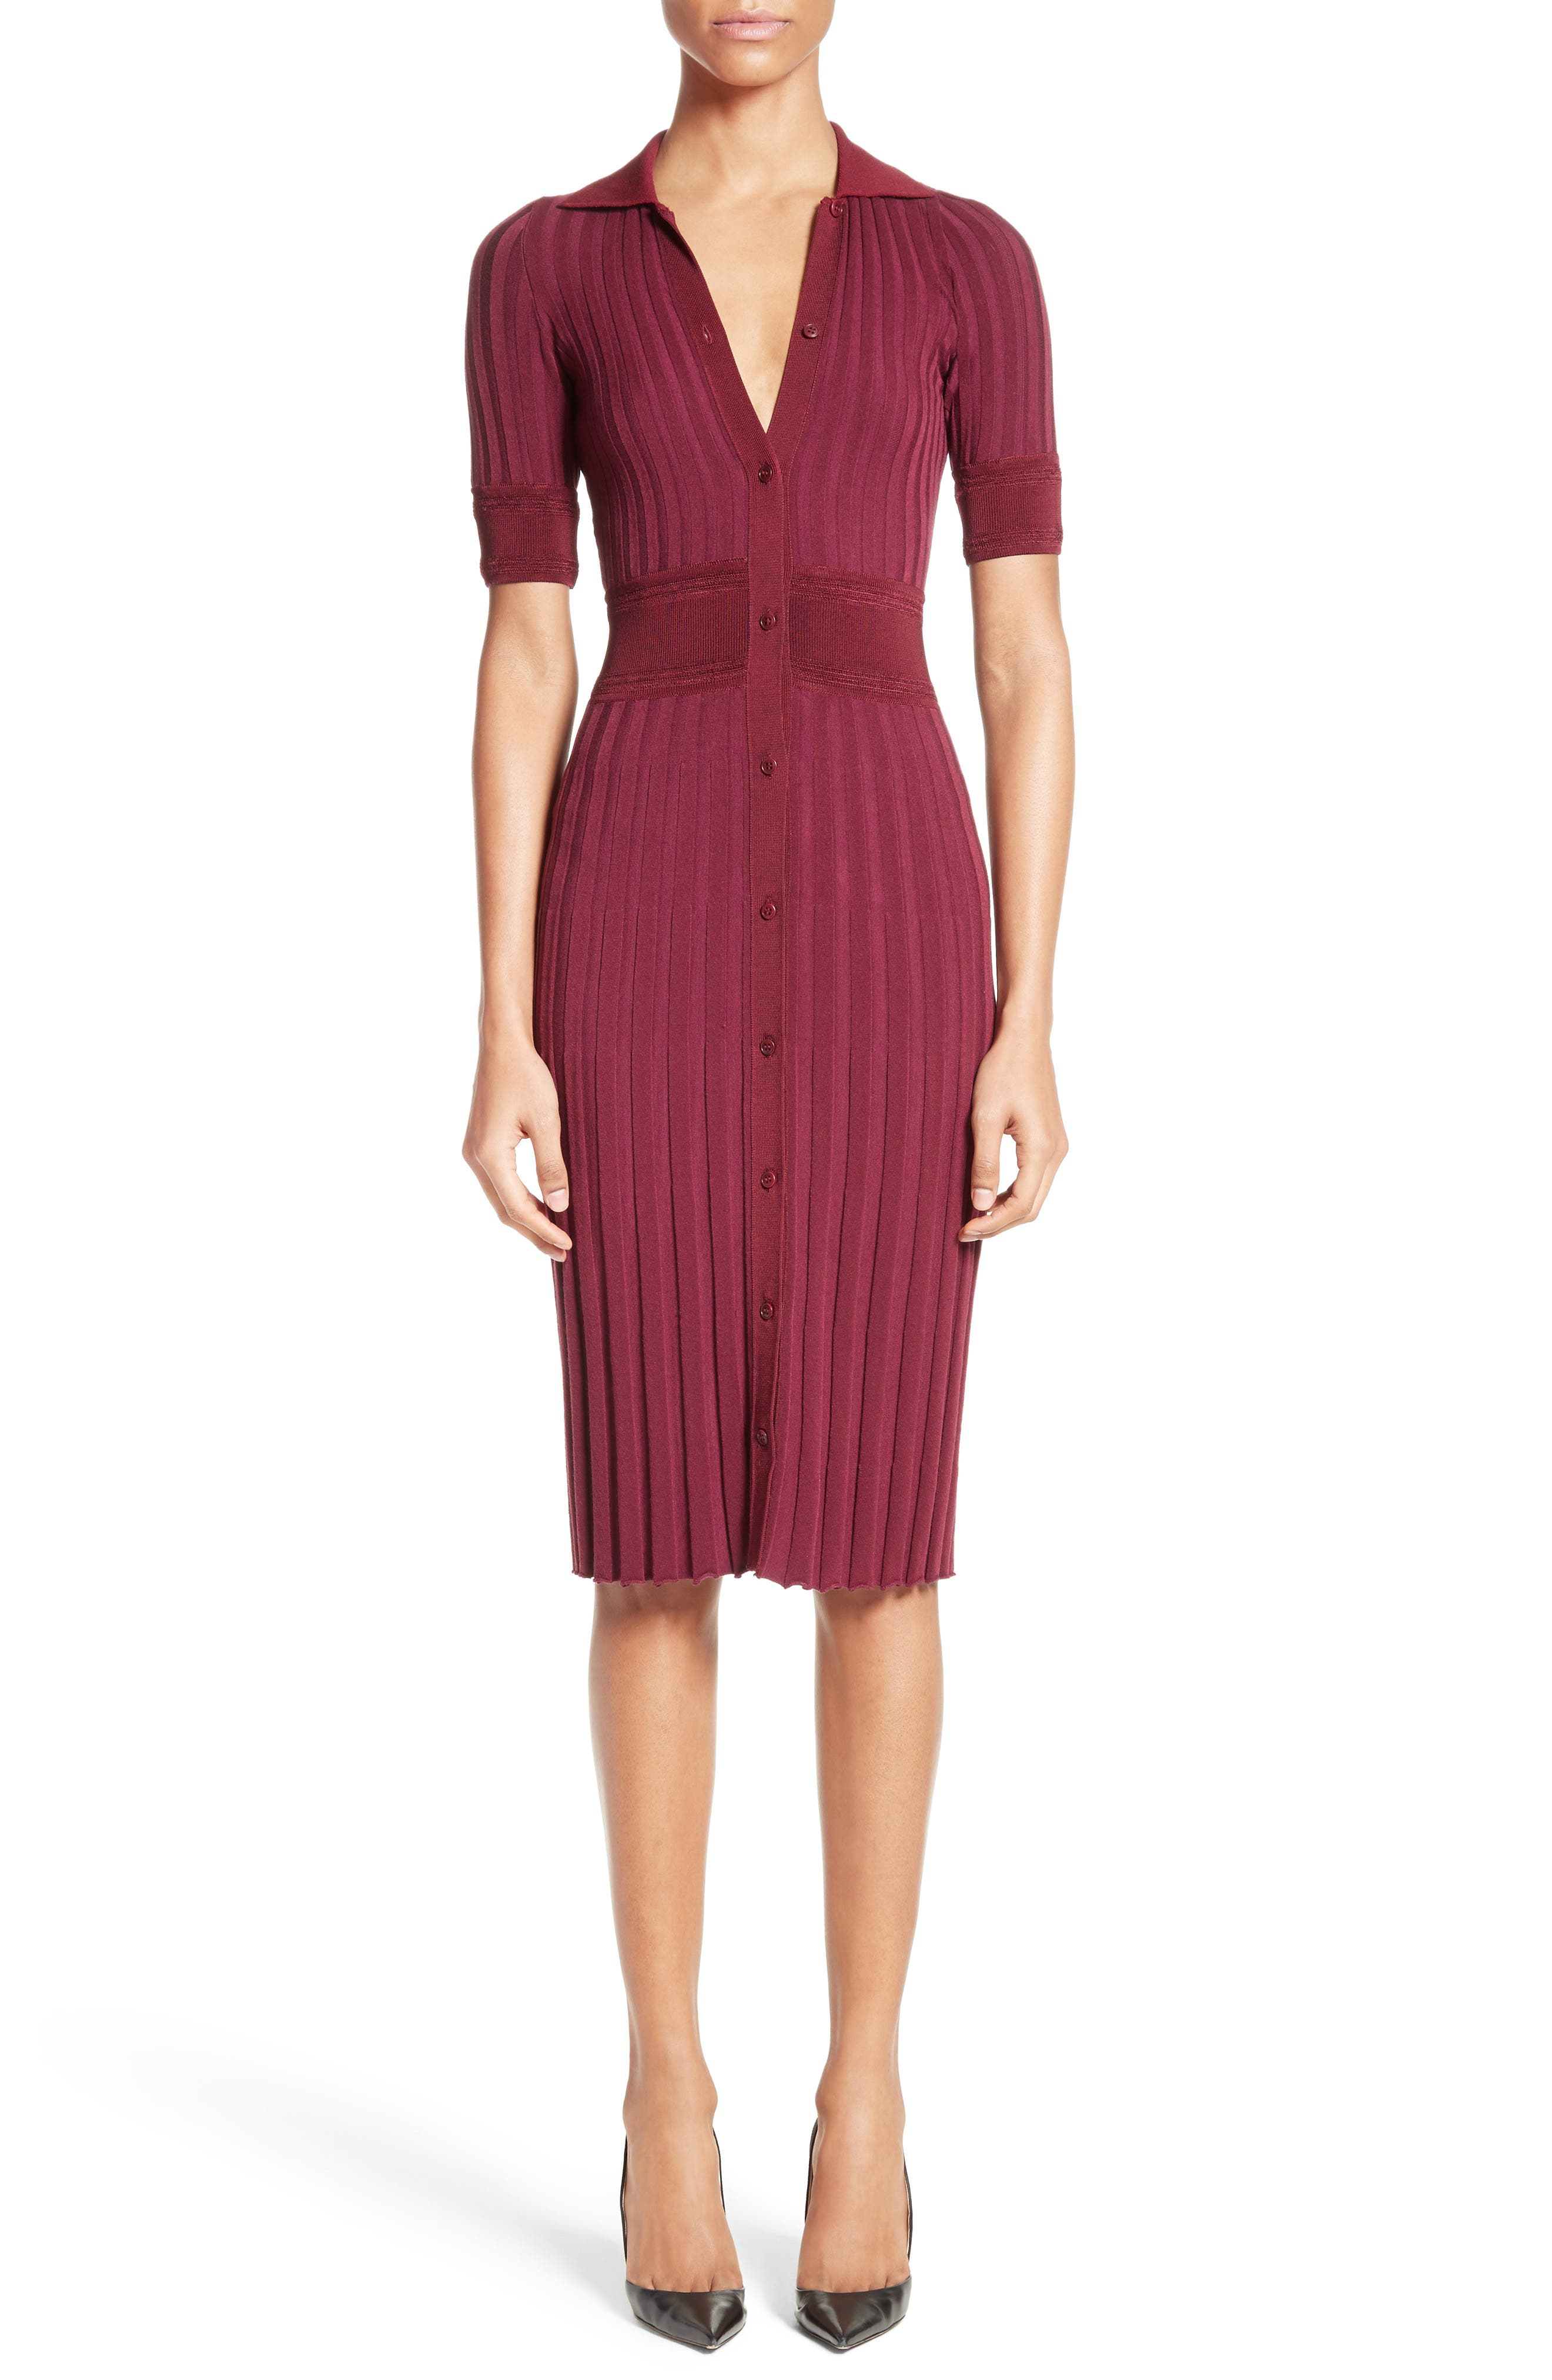 Altuzarra Olivia Knit Shirtdress